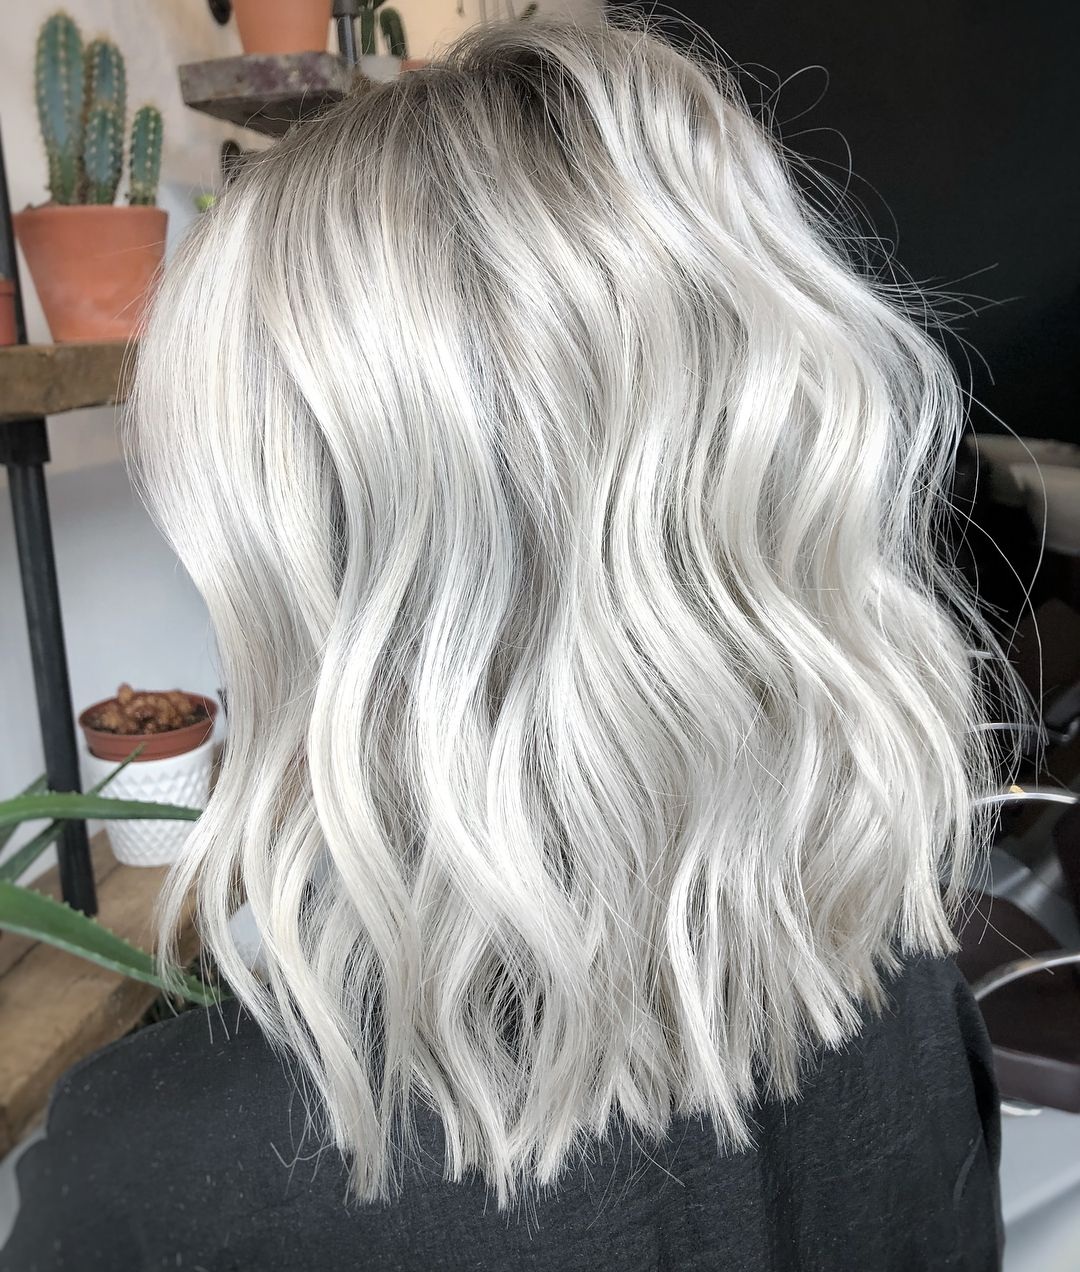 2020 New Gray Hair Wigs For African American Women Denki Wig Issa Wig Gray Human Hair Good Synthetic Wigs Sabrina Wig